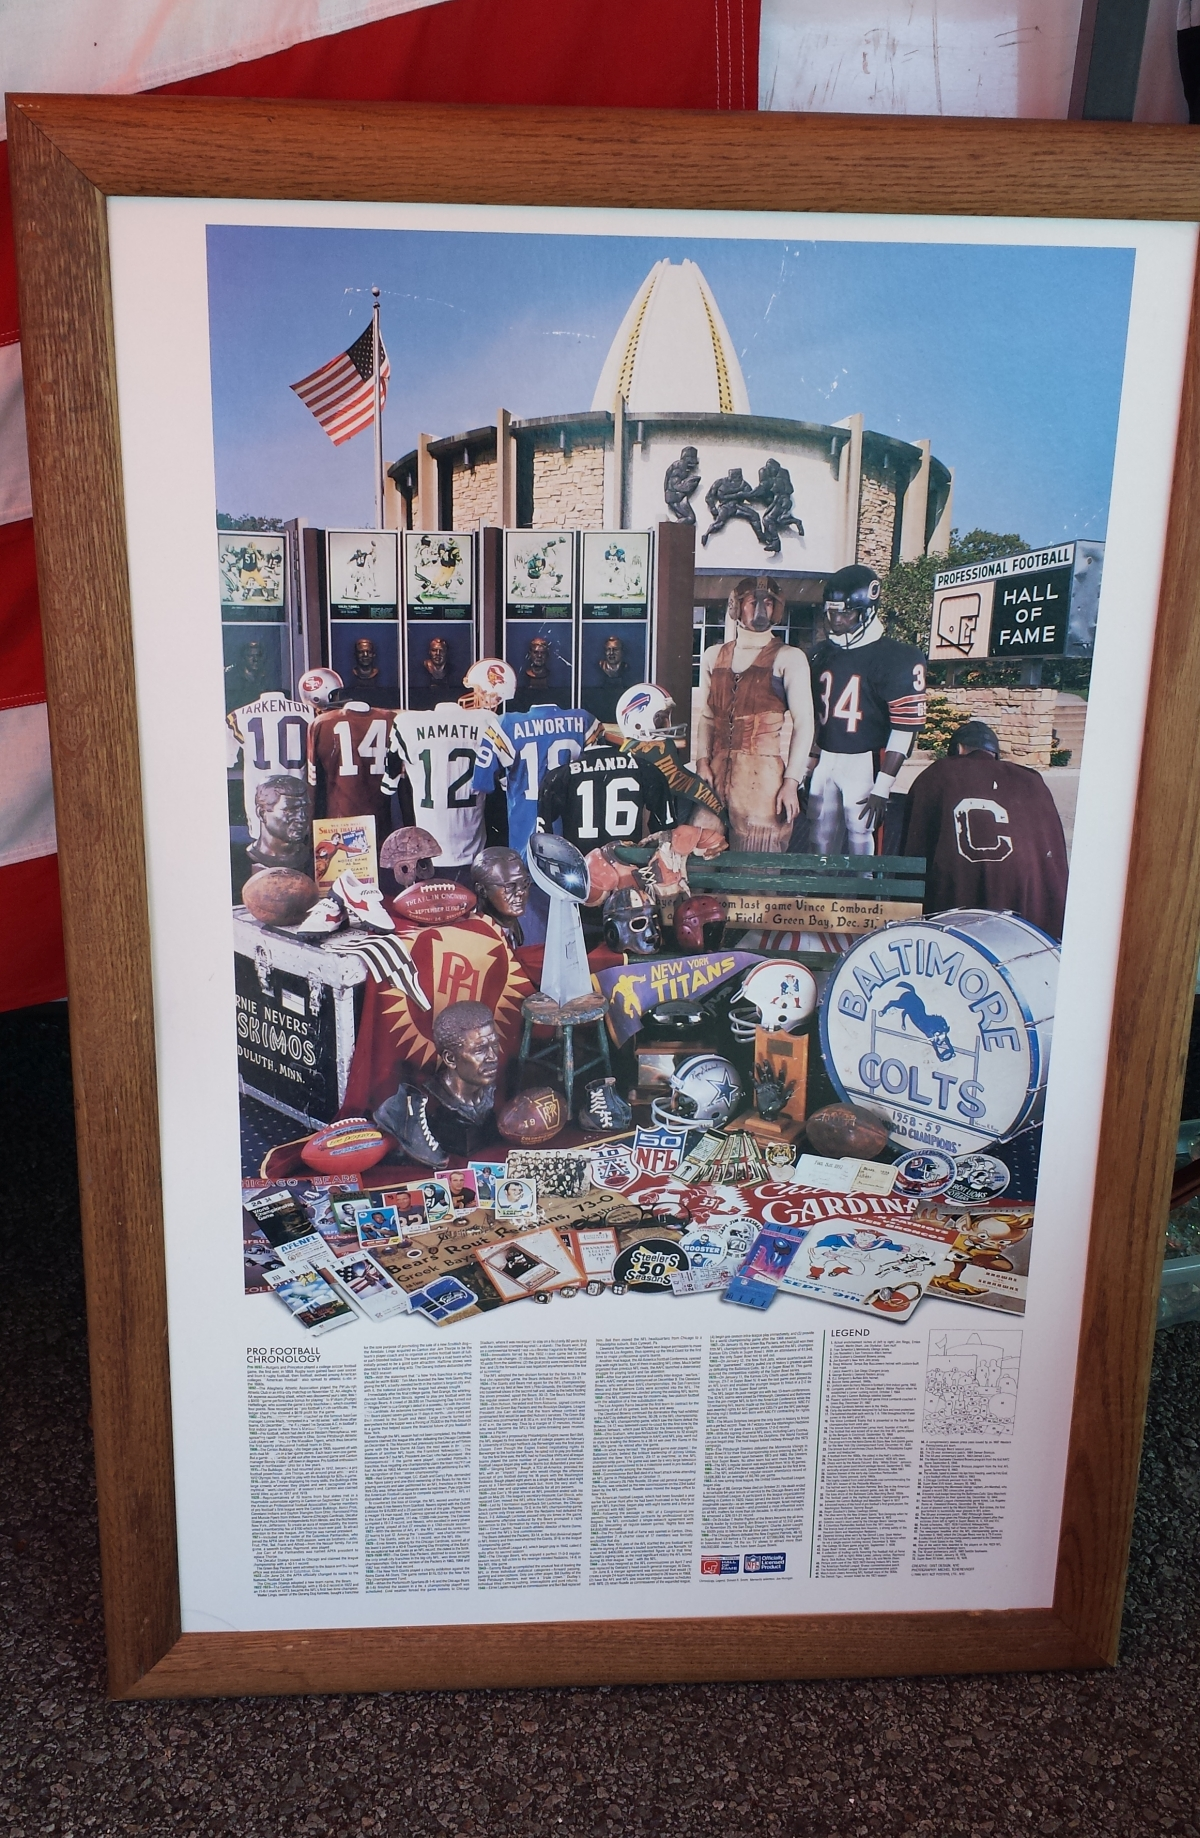 Poster of the NFL Hall of Fame